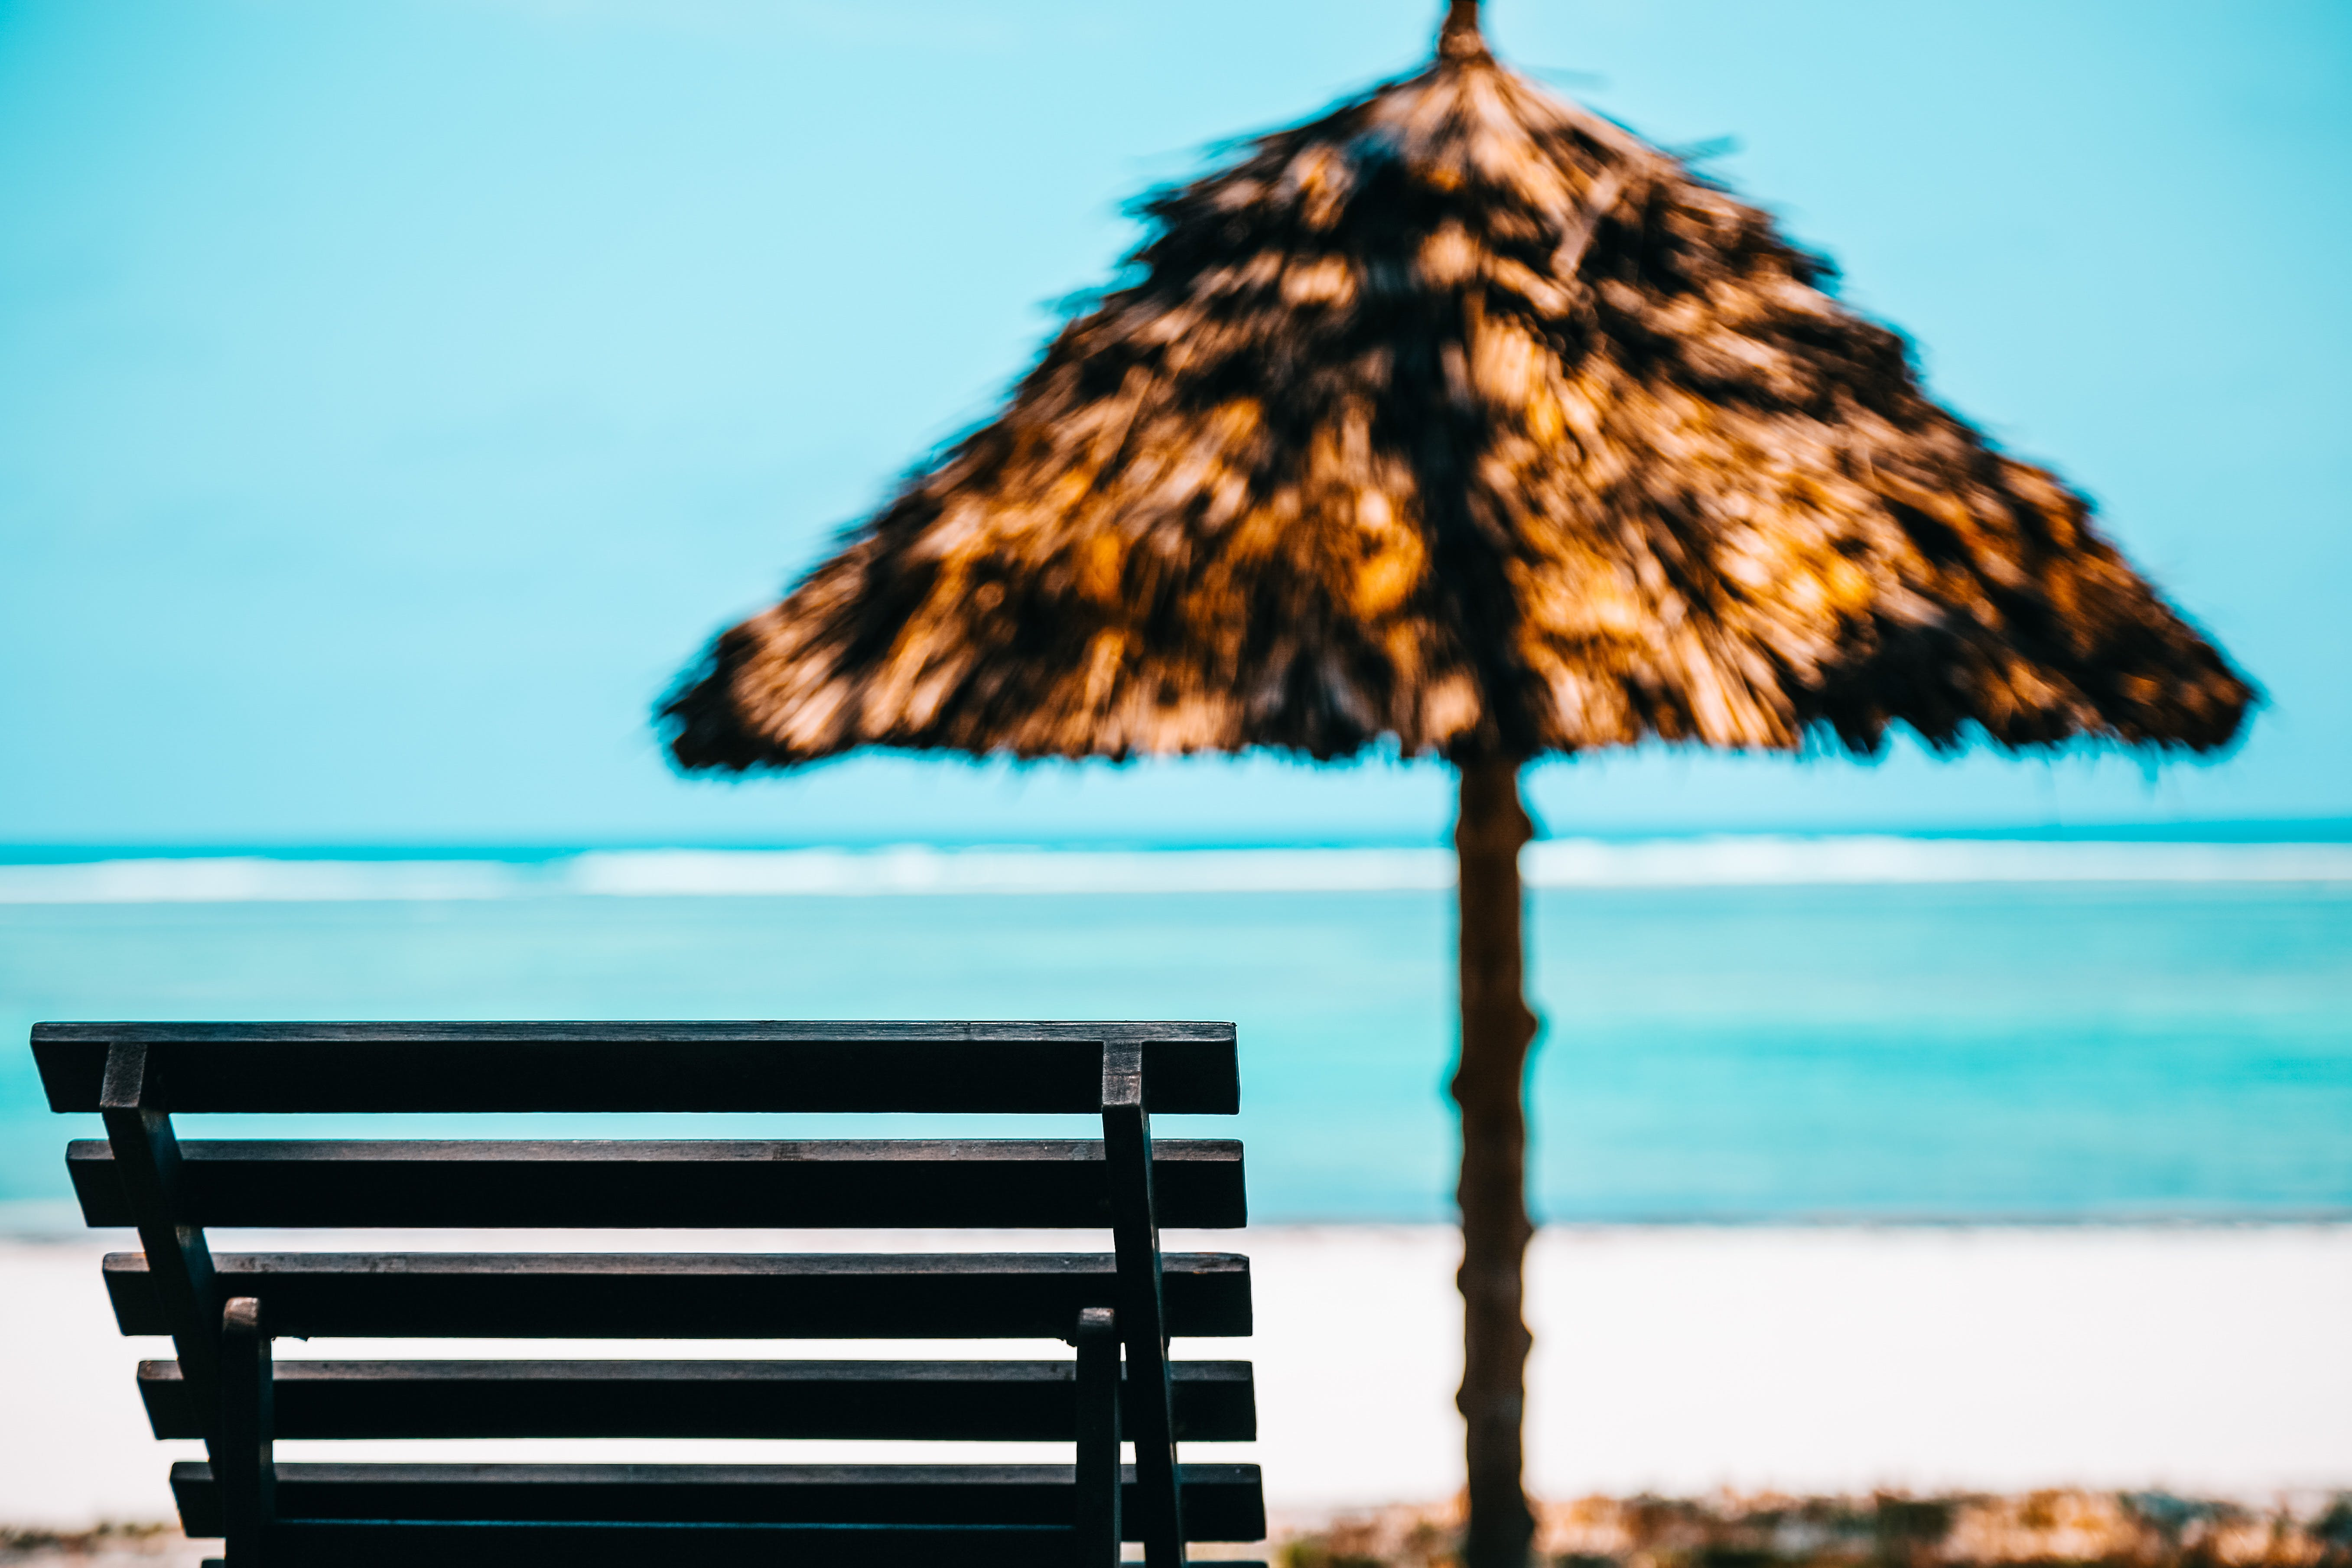 Beach Lounge Chair With Straw Parasol